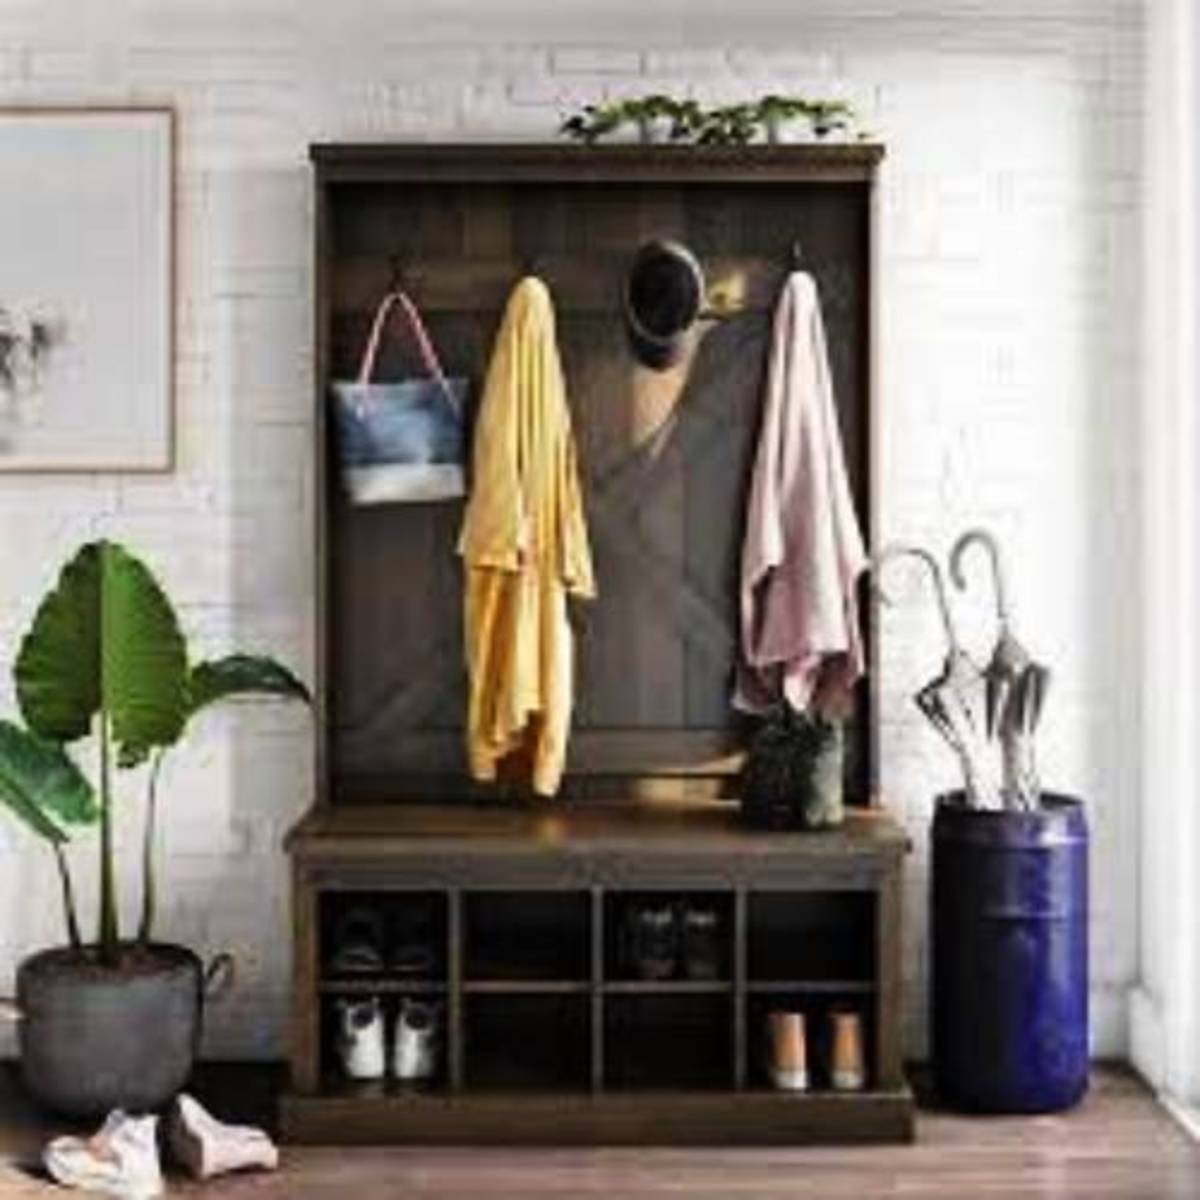 Organize in your entryway with the bench with hall tree.